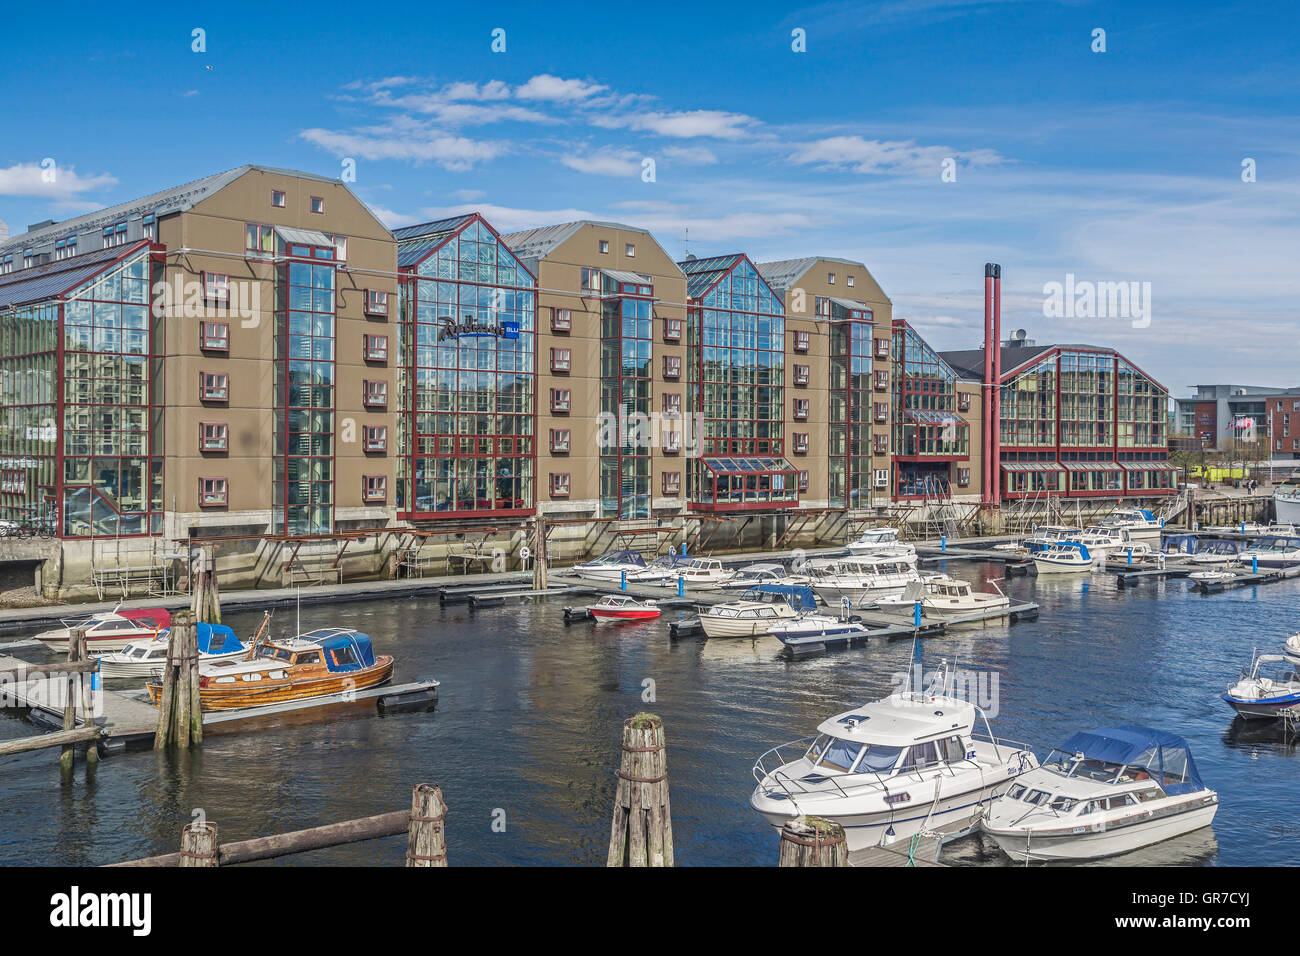 Besides The Old Traditional Warehouses Located In The Immediate Vicinity, This Modern Shopping Center - Stock Image